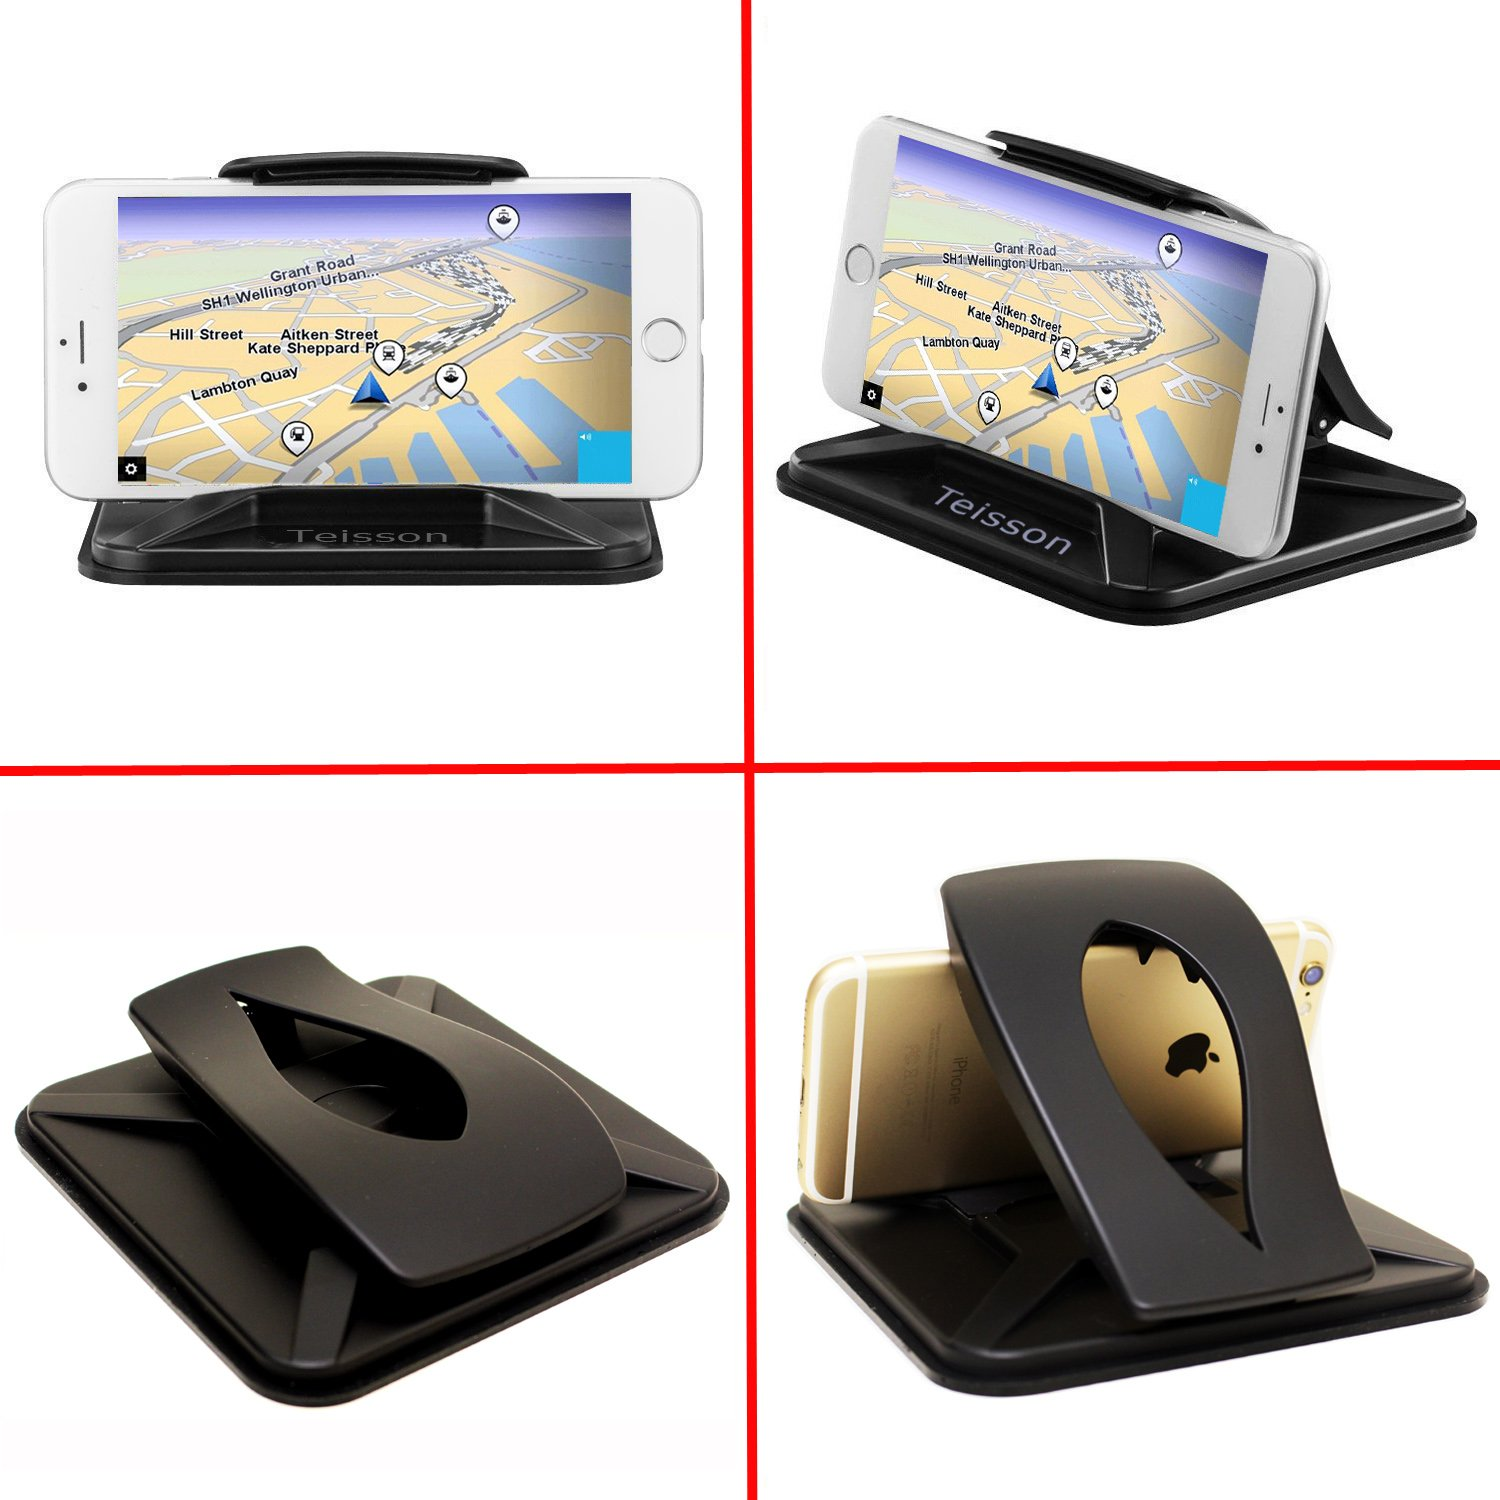 Teisson Car Dashboard Cell Phone Mount Compatible iPhone Xs Max iPhone XR X//8//8Plus Galaxy Google Phones from 4-7 Inch 4351521924